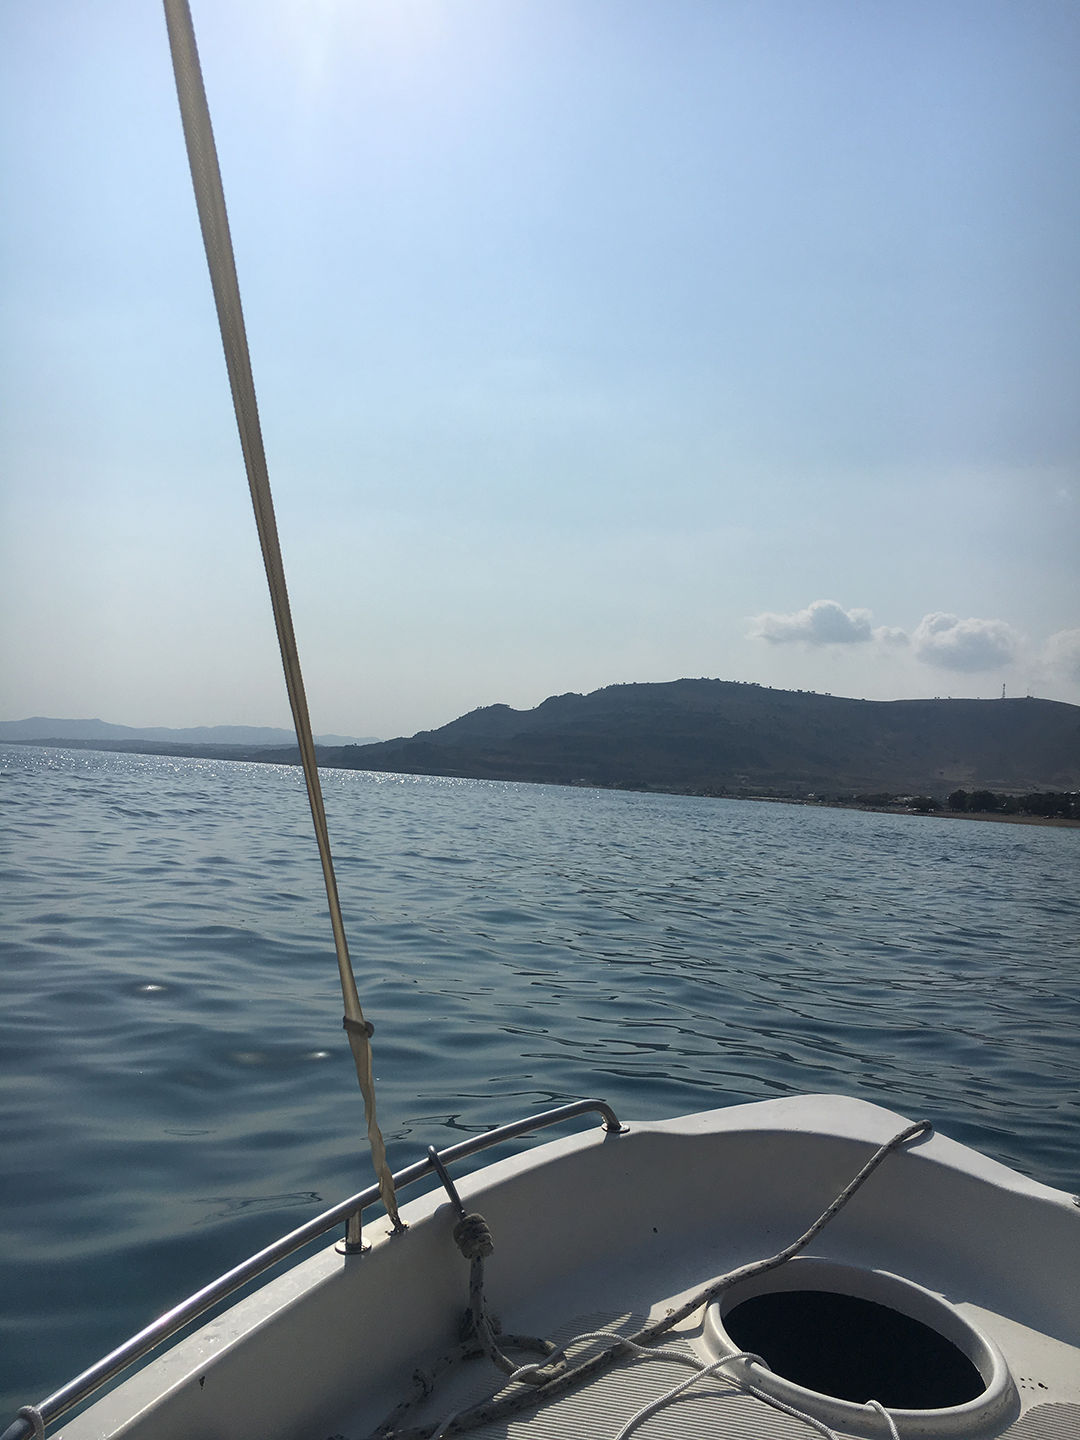 Hire A Boat - Things To Do In Rhodes - Miss Boux